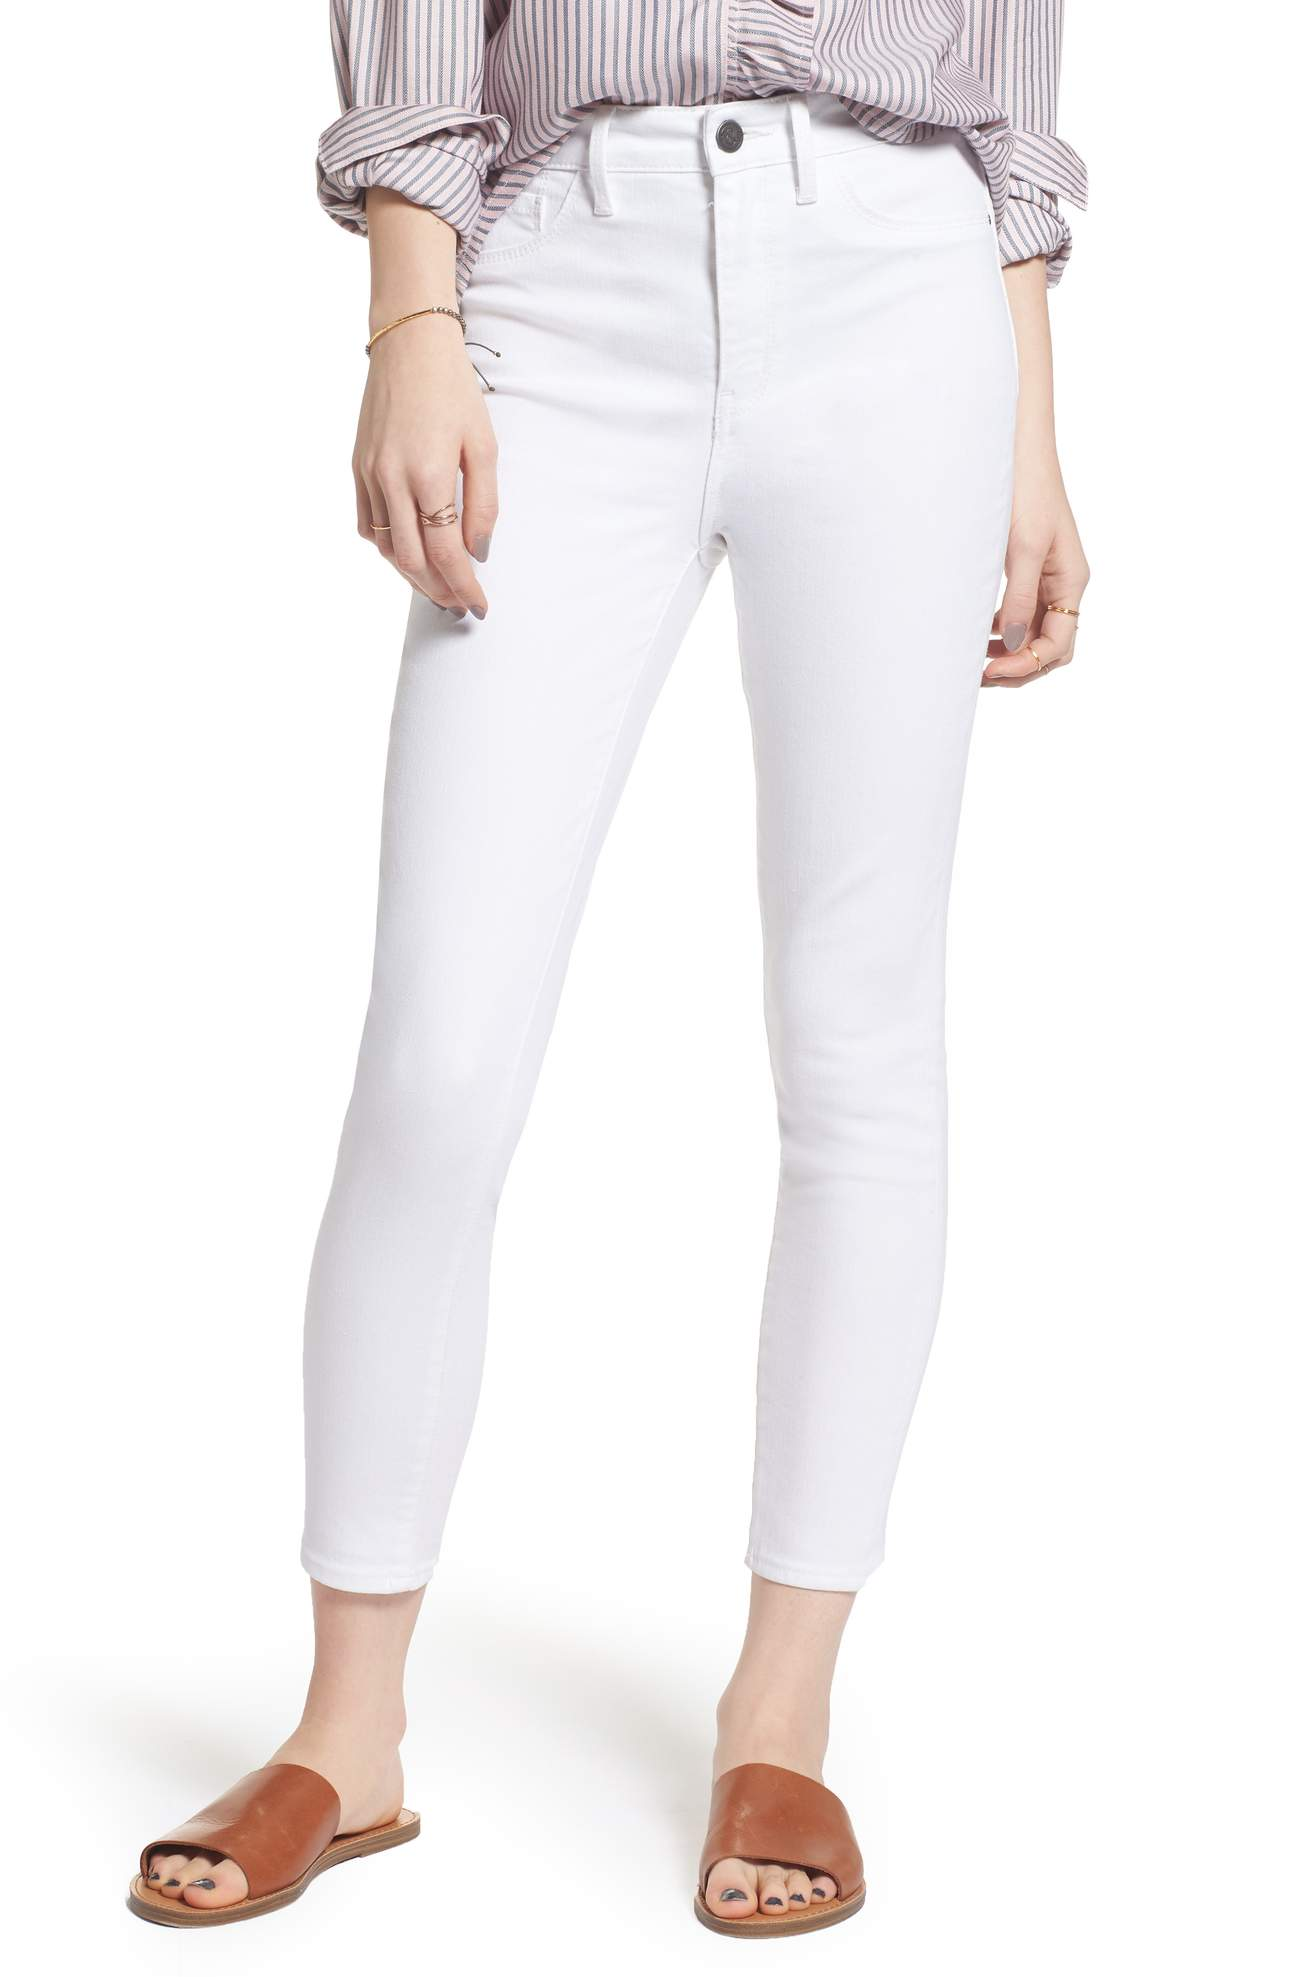 This Charity High Waist Crop Skinny Jean Was{&amp;nbsp;} $79.00 and is now $47.40. Head in to the office or out for the night in stretch-denim skinny jeans cut for a sleek fit that stops at the ankles to flaunt your favorite kicks.<p>(Image: Nordstrom)</p>